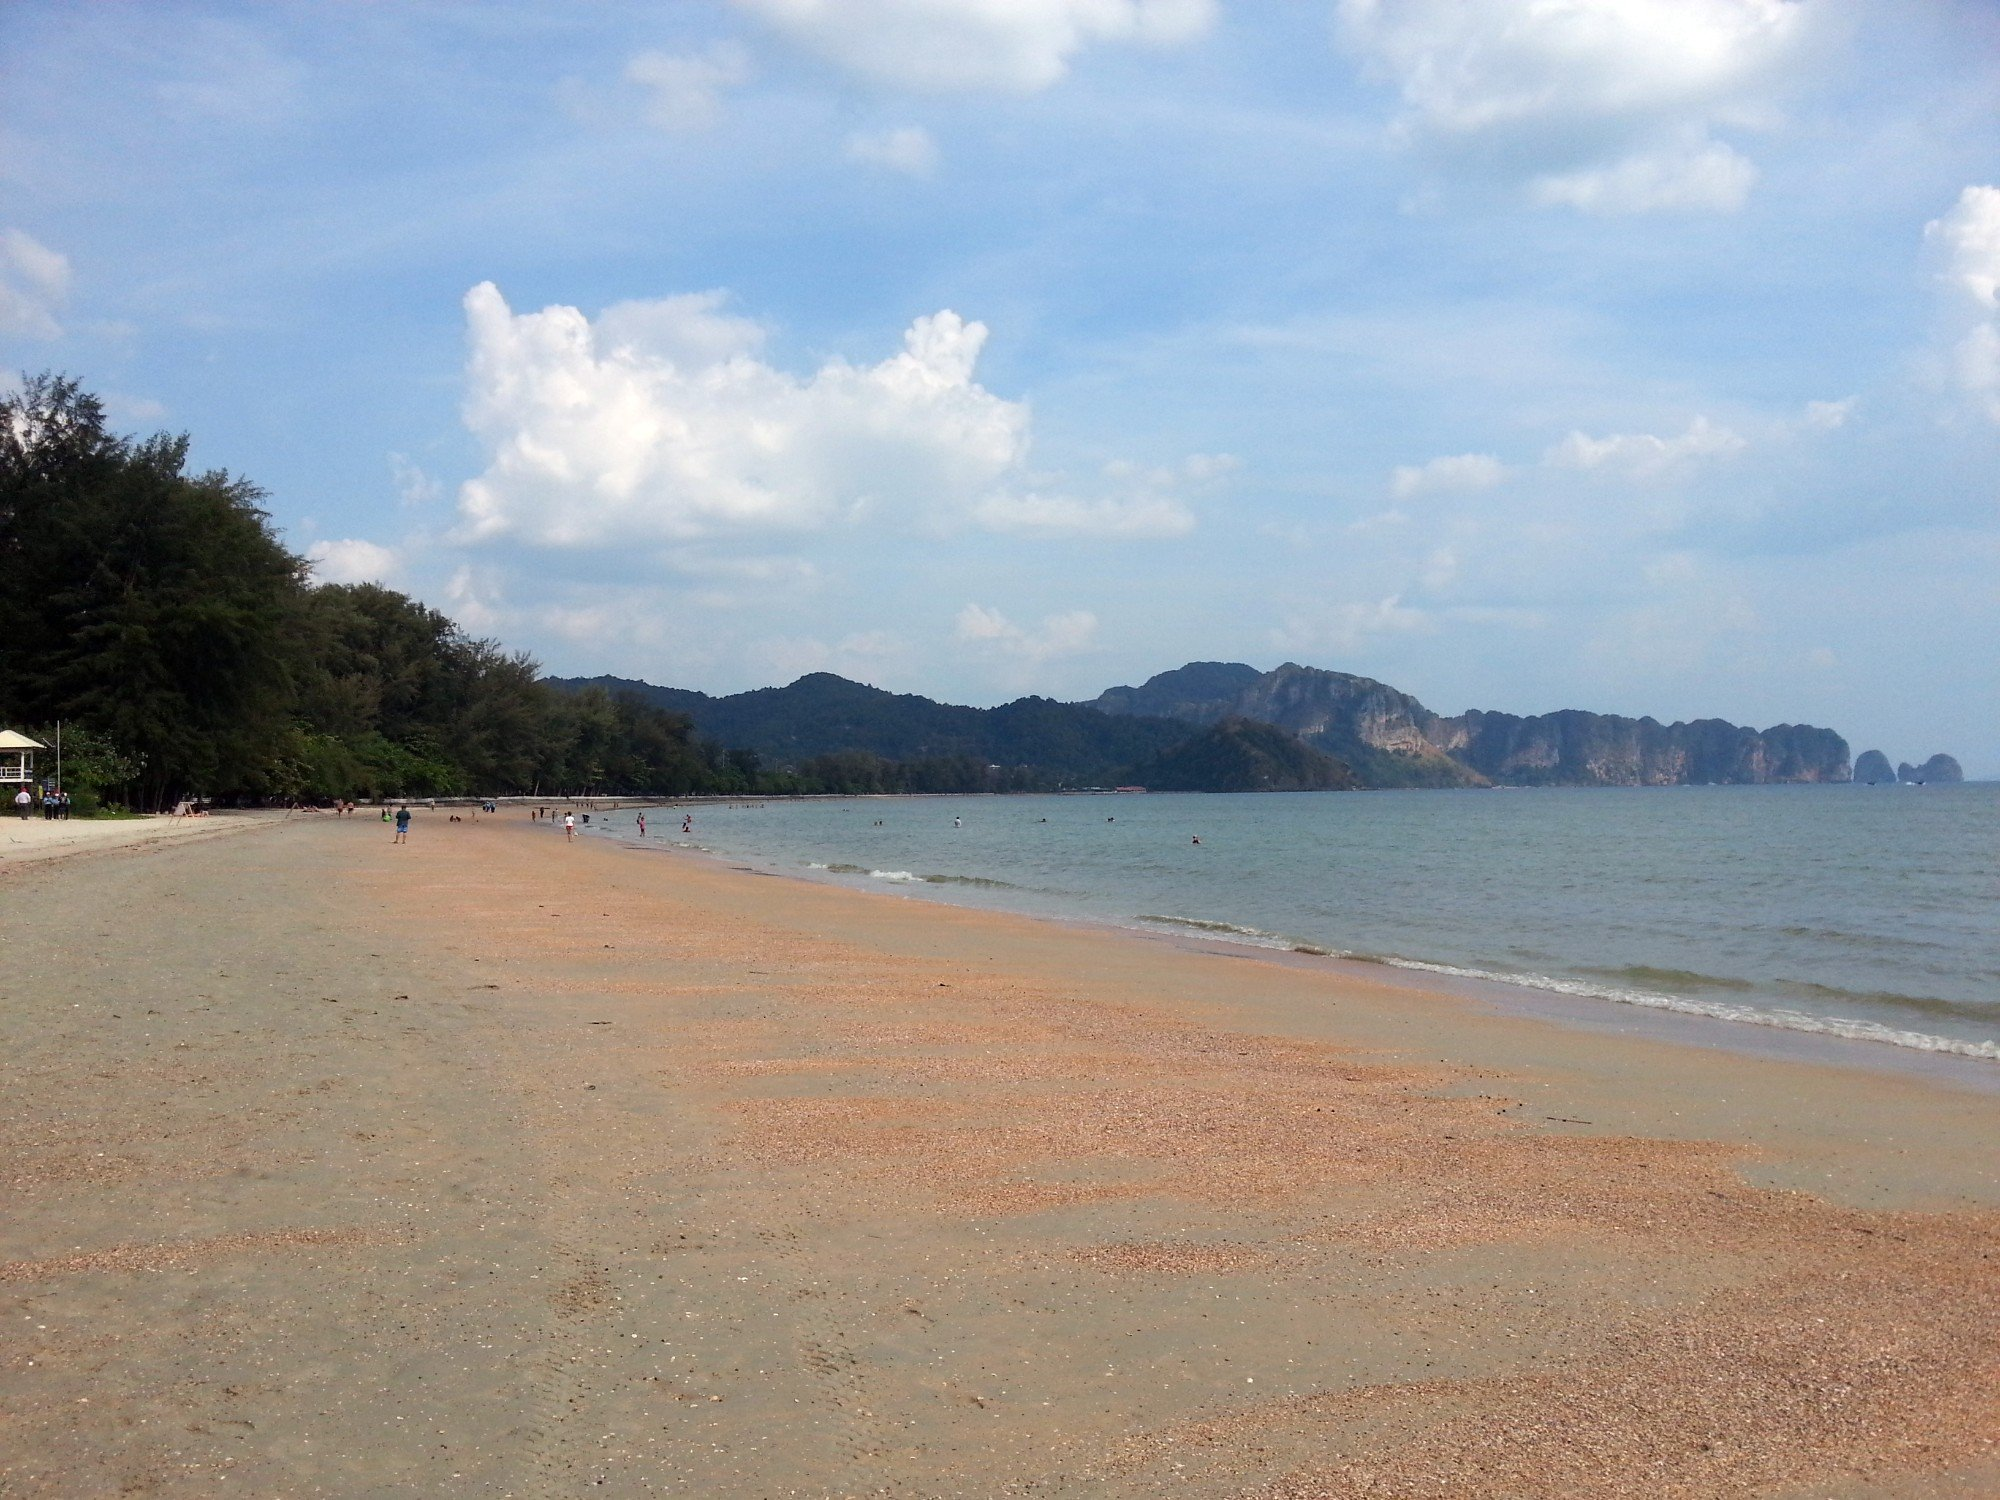 Western end of Noppharat Thara Beach